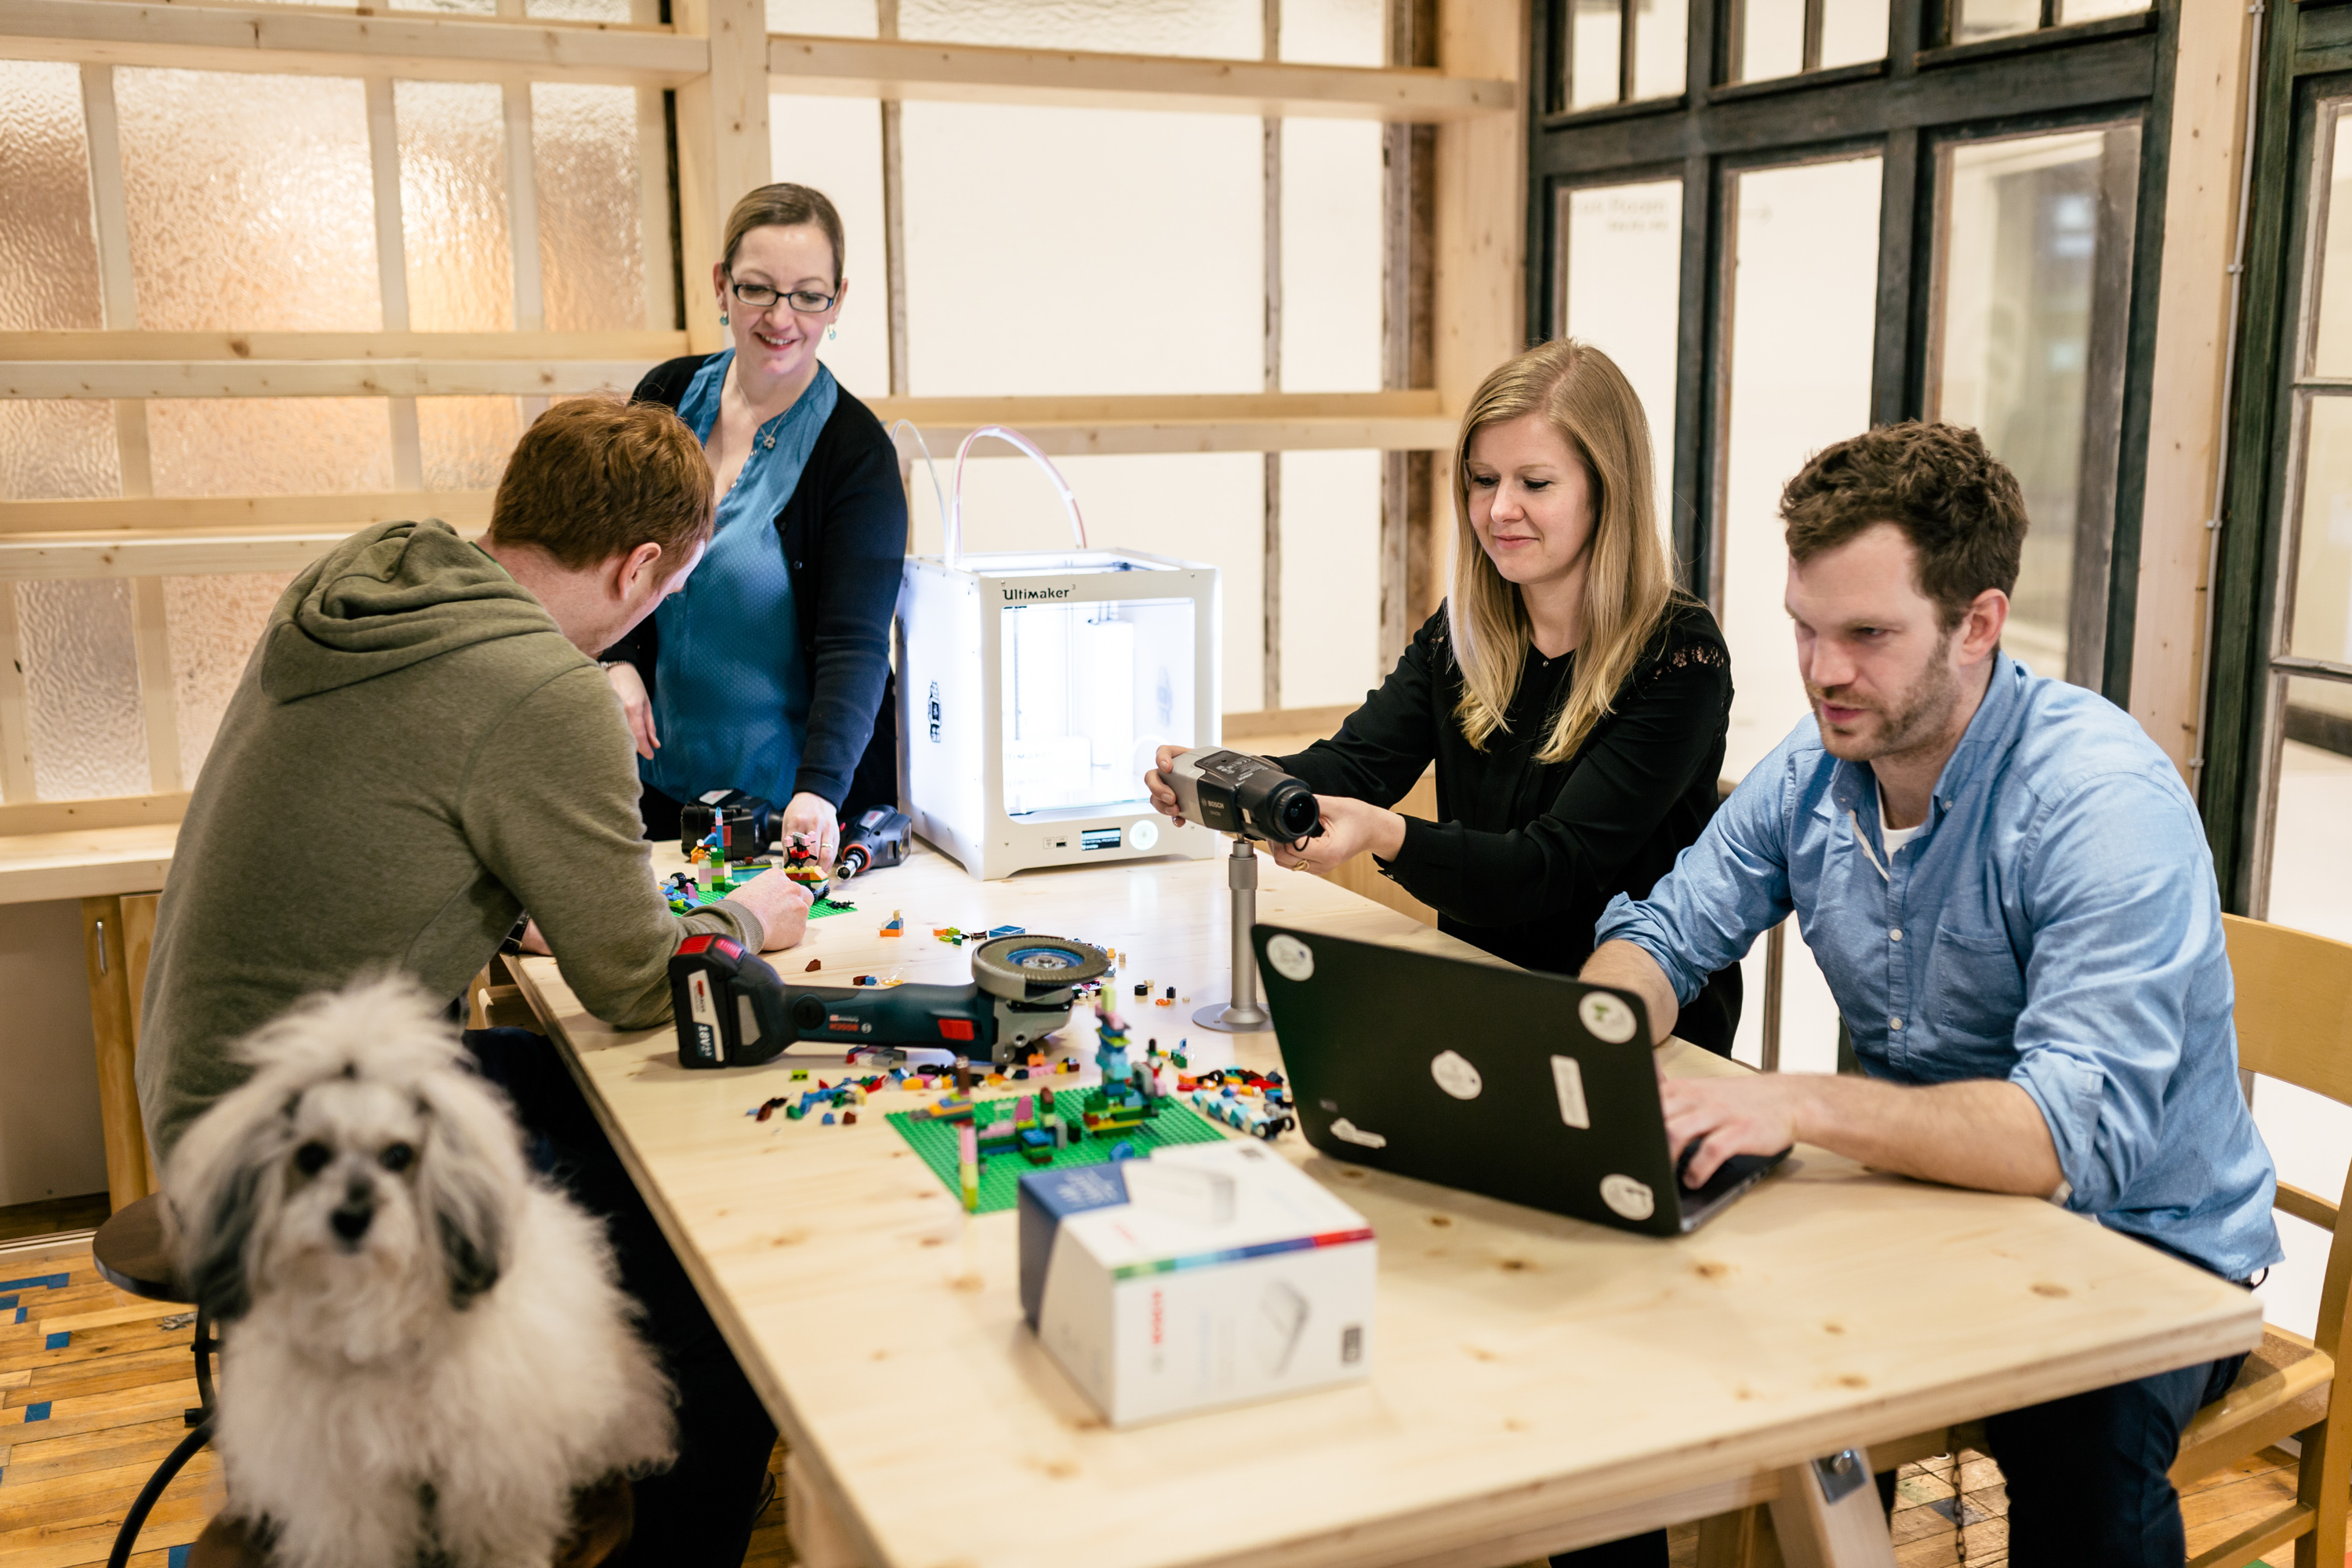 Workshops on the Bosch IoT campus